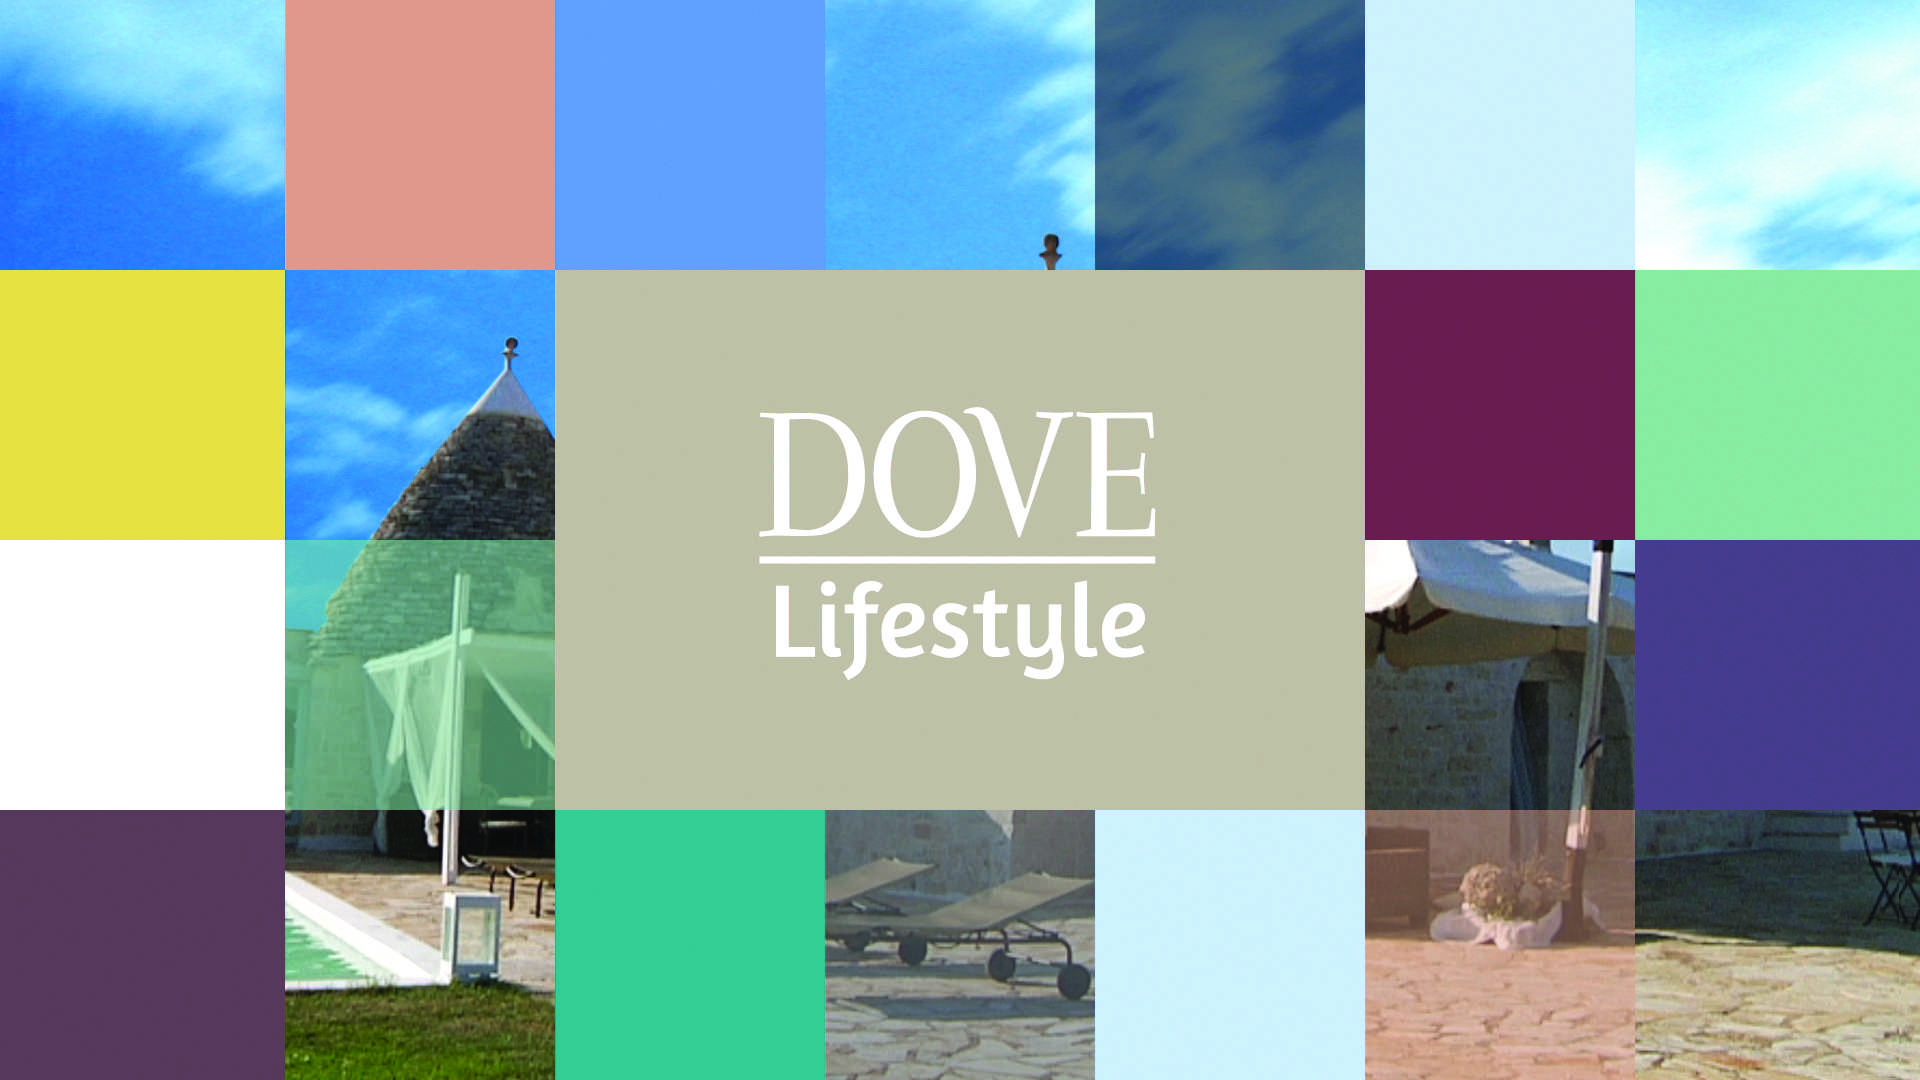 Il canale tv Dove (Sky 412) si rifà il look e diventa lifestyle  | Digitale terrestre: Dtti.it